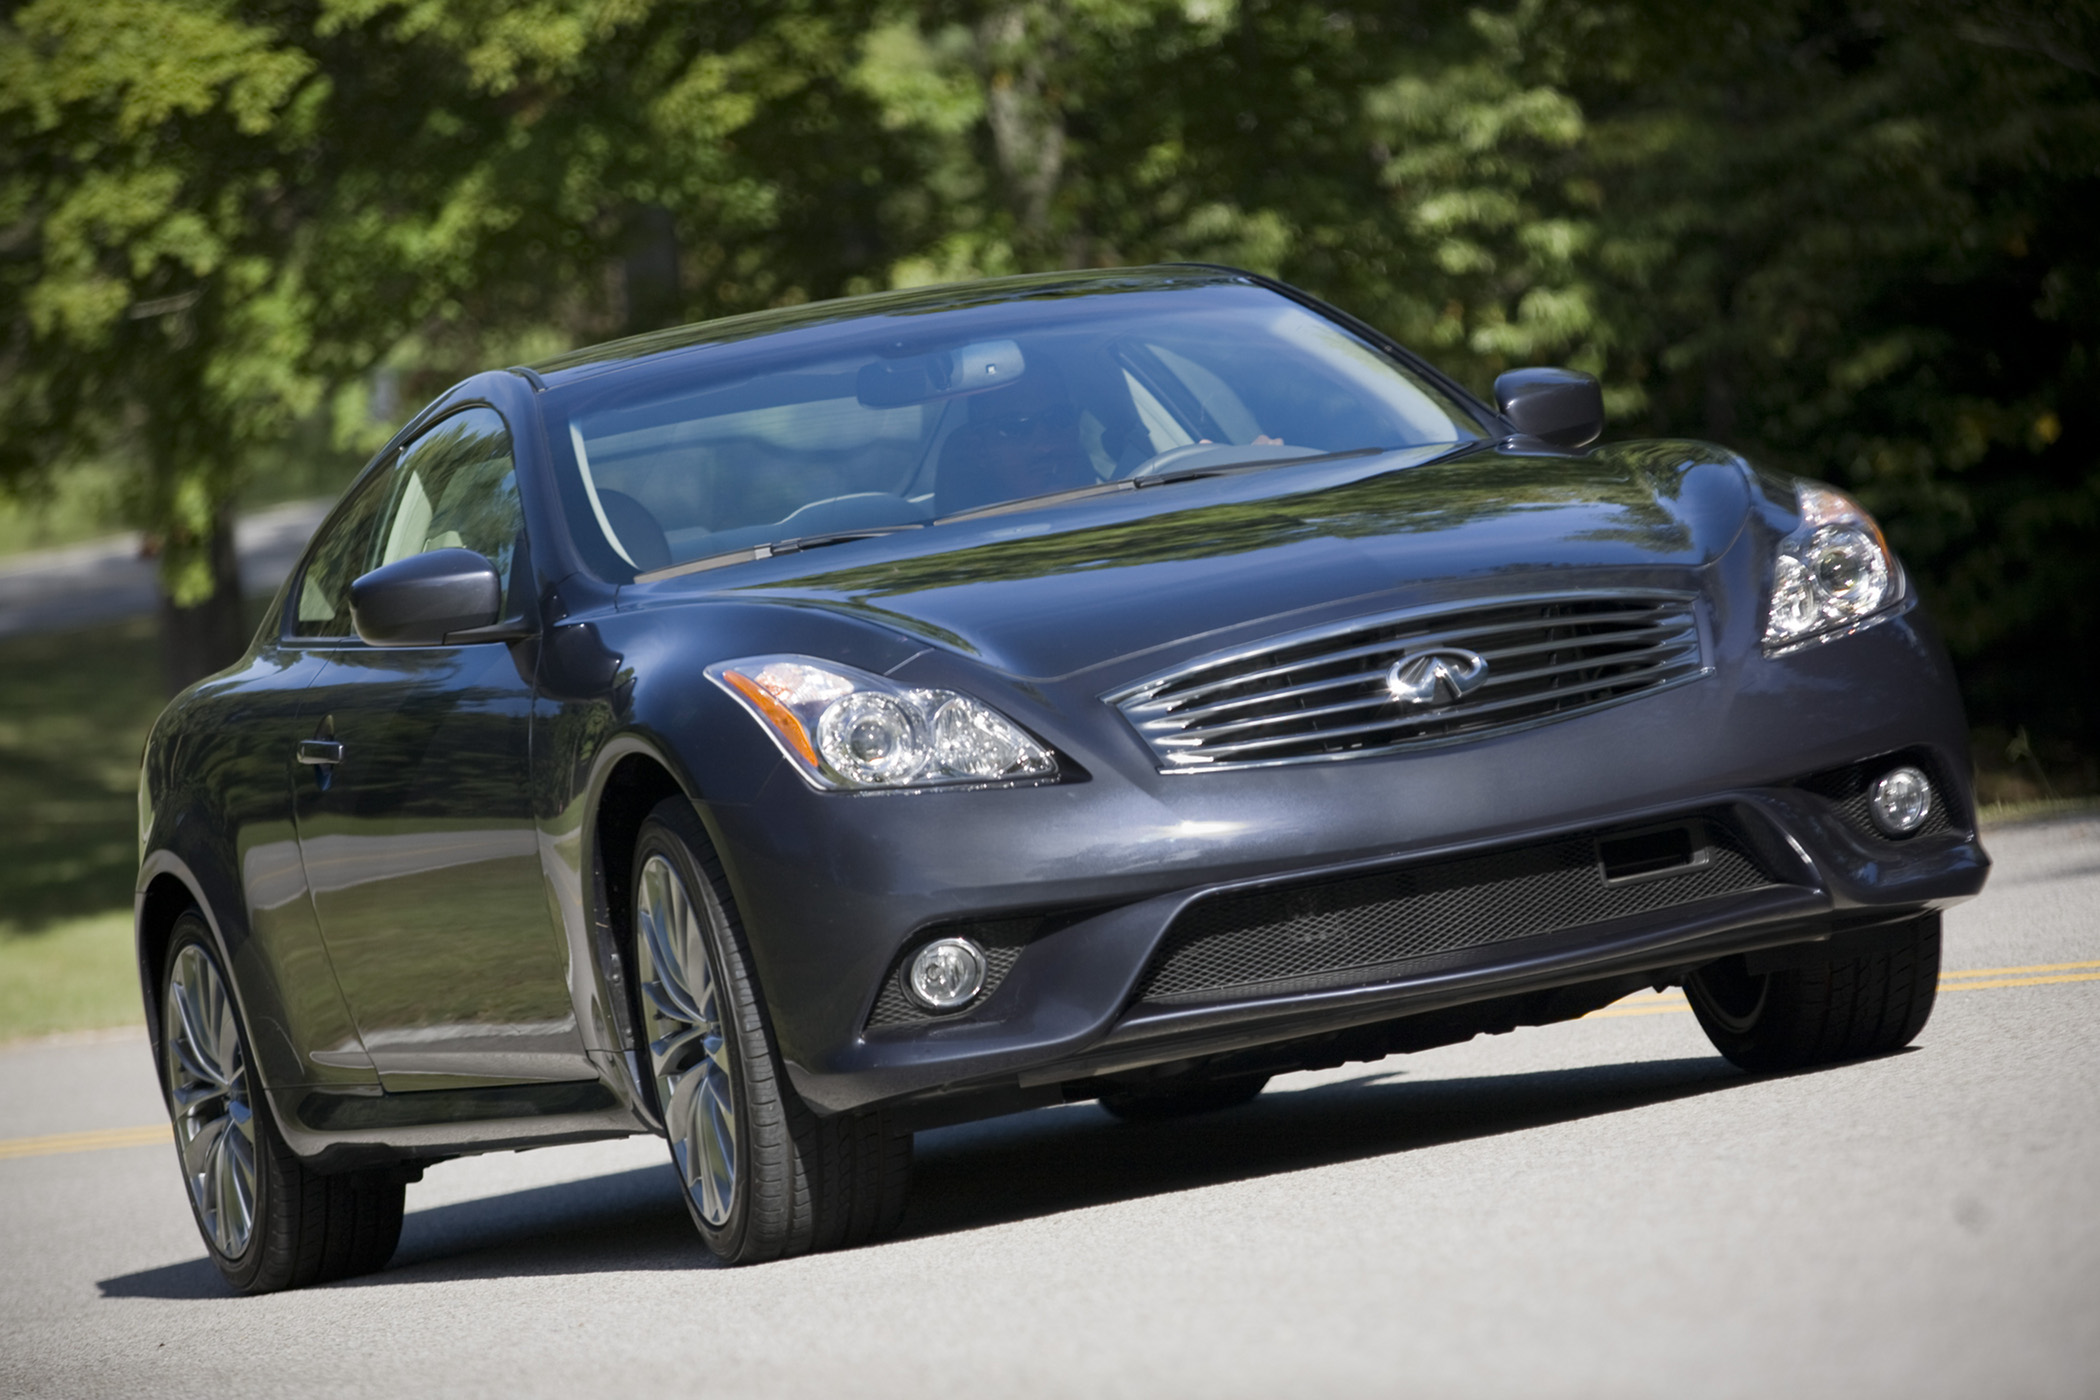 2011 infiniti jx image collections hd cars wallpaper 2011 infiniti jx images hd cars wallpaper 2011 infiniti g coupe information and photos momentcar infiniti vanachro Image collections